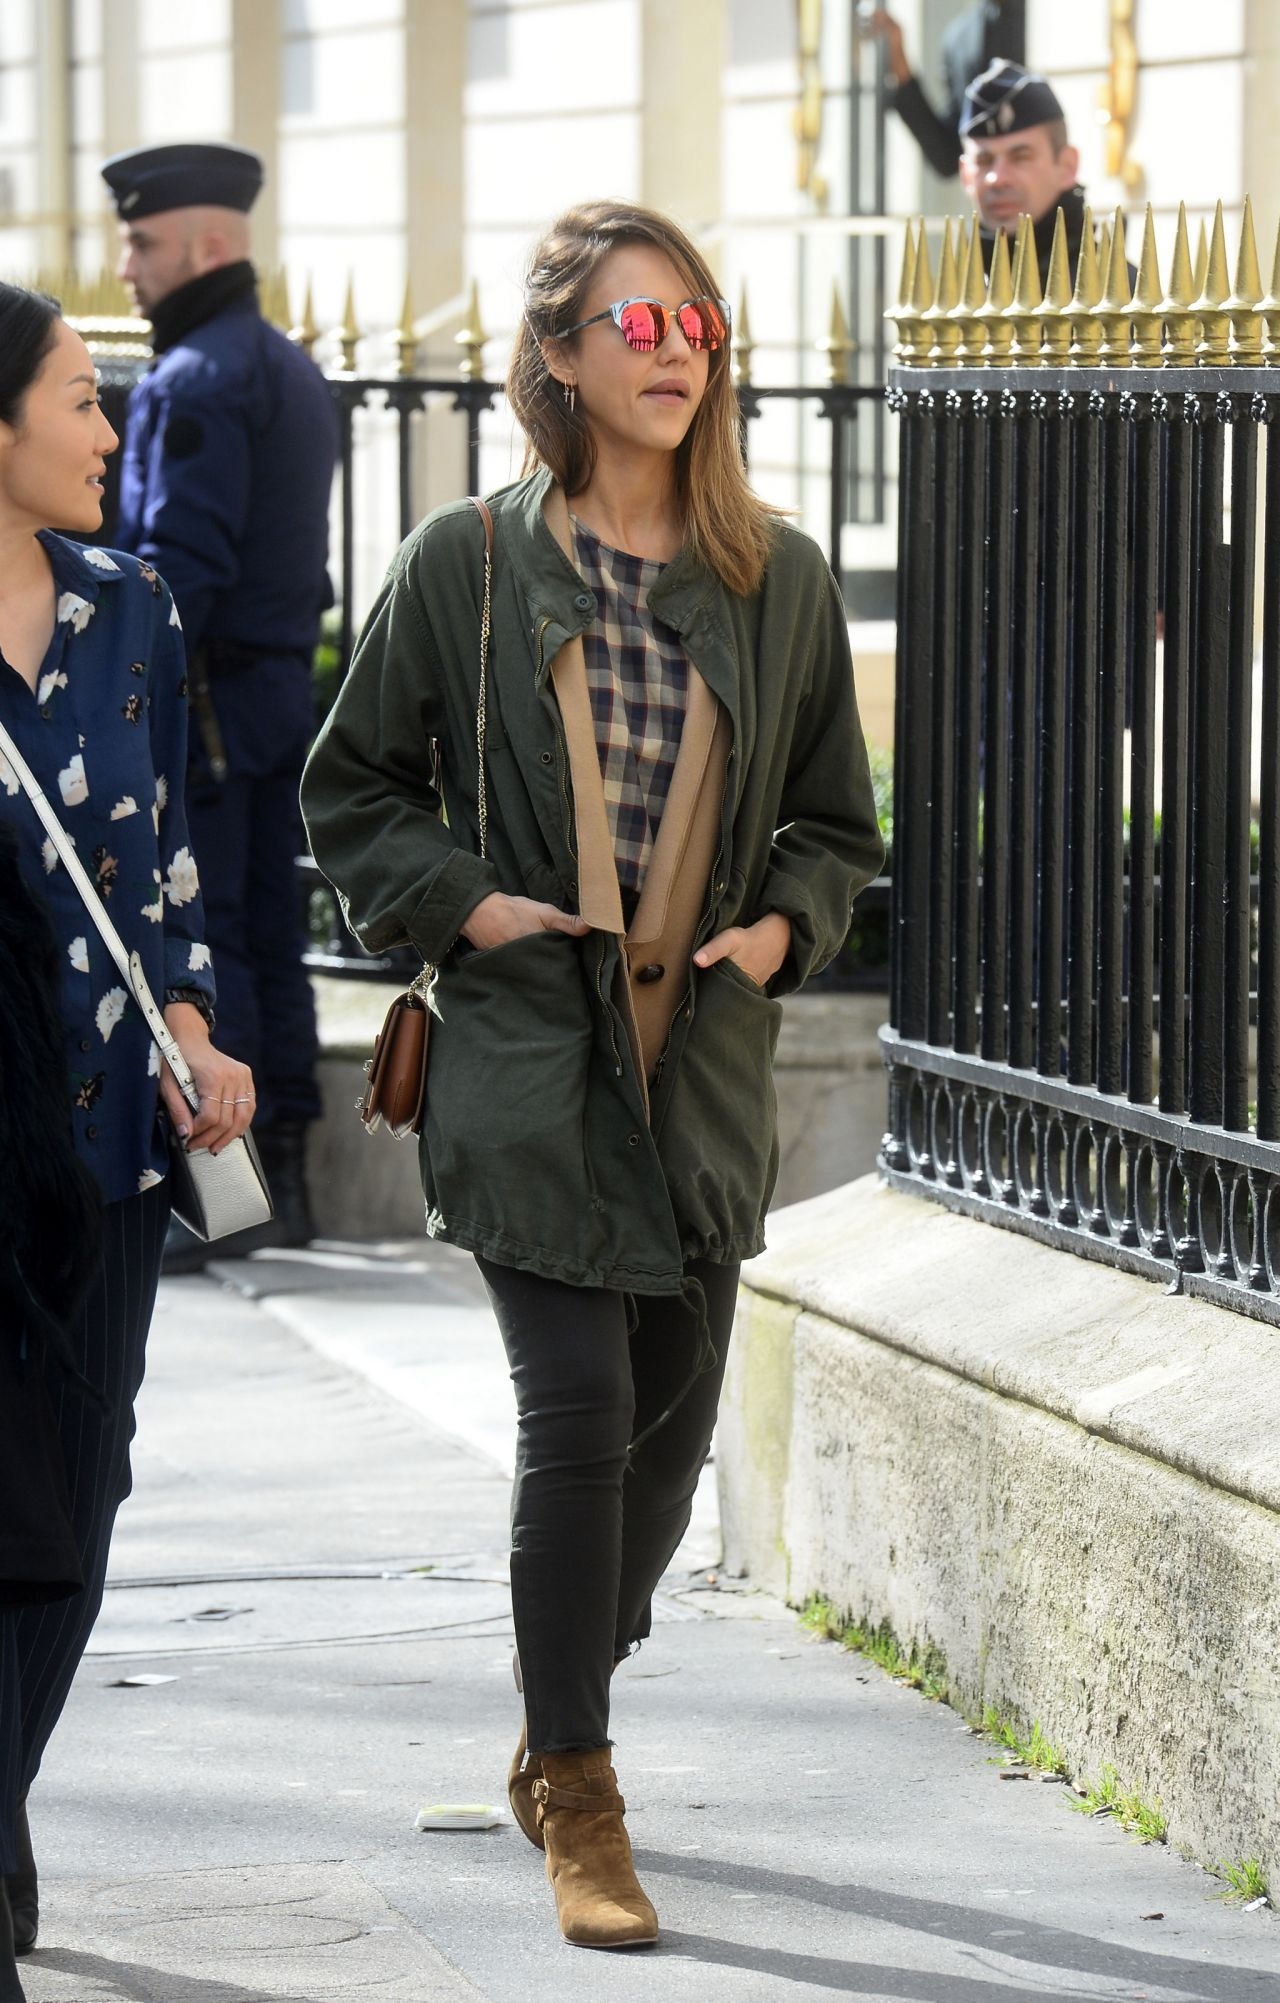 Jessica Alba Casual Style Out In Paris 3 3 2016